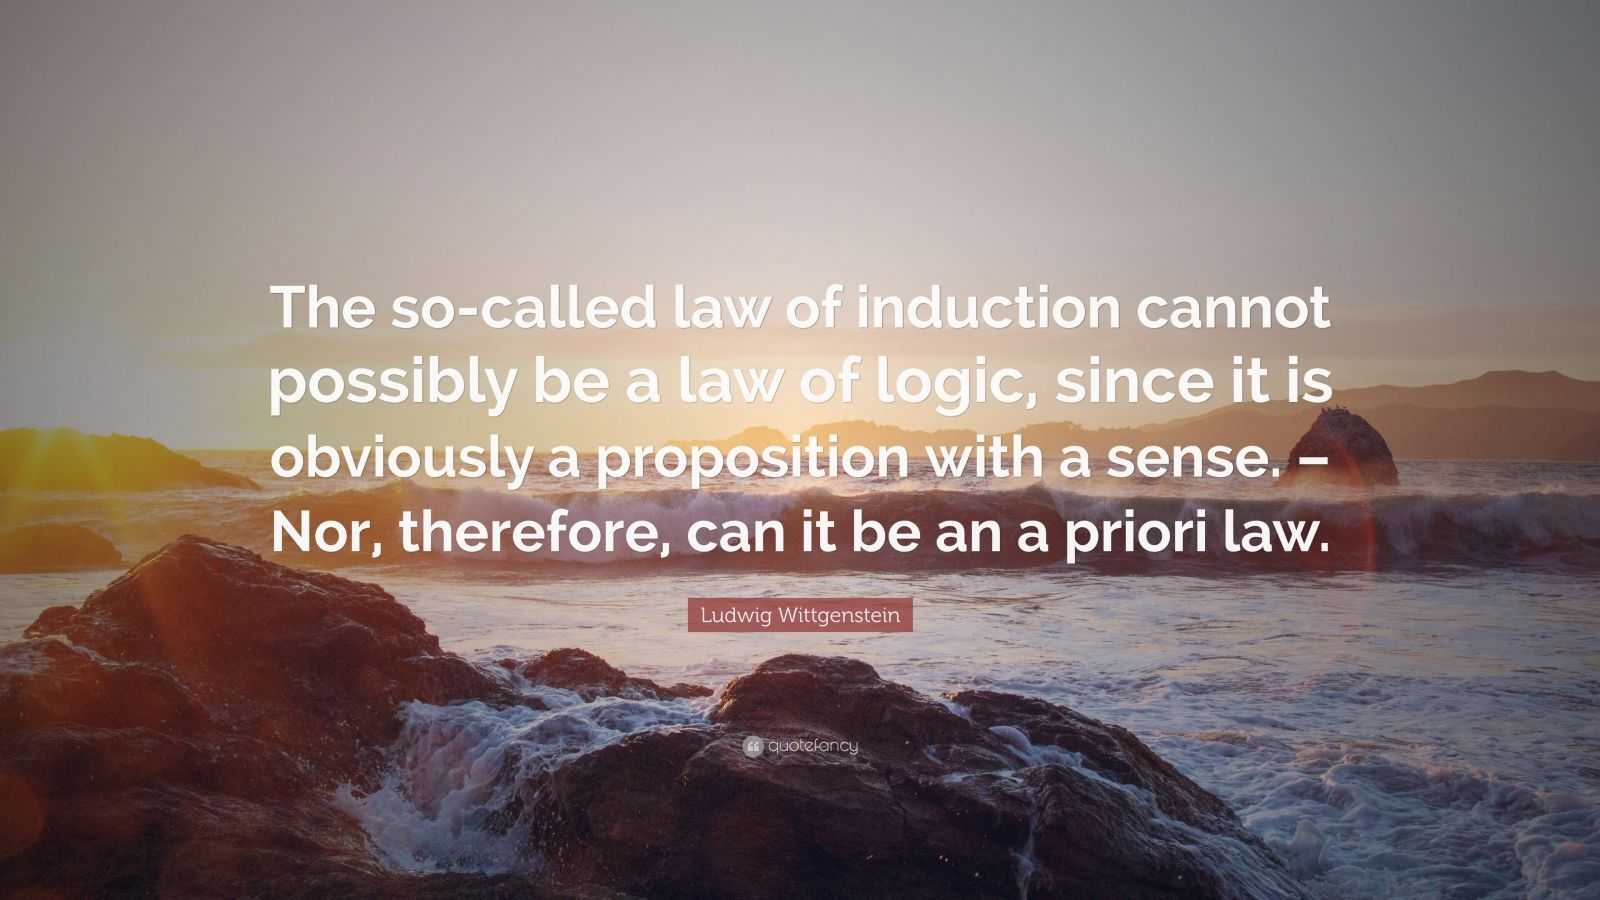 "Ludwig Wittgenstein Quote: ""The so-called law of induction cannot possibly be a law of logic, since it is obviously a proposition with a sense. – Nor, therefore, can it be an a priori law."""